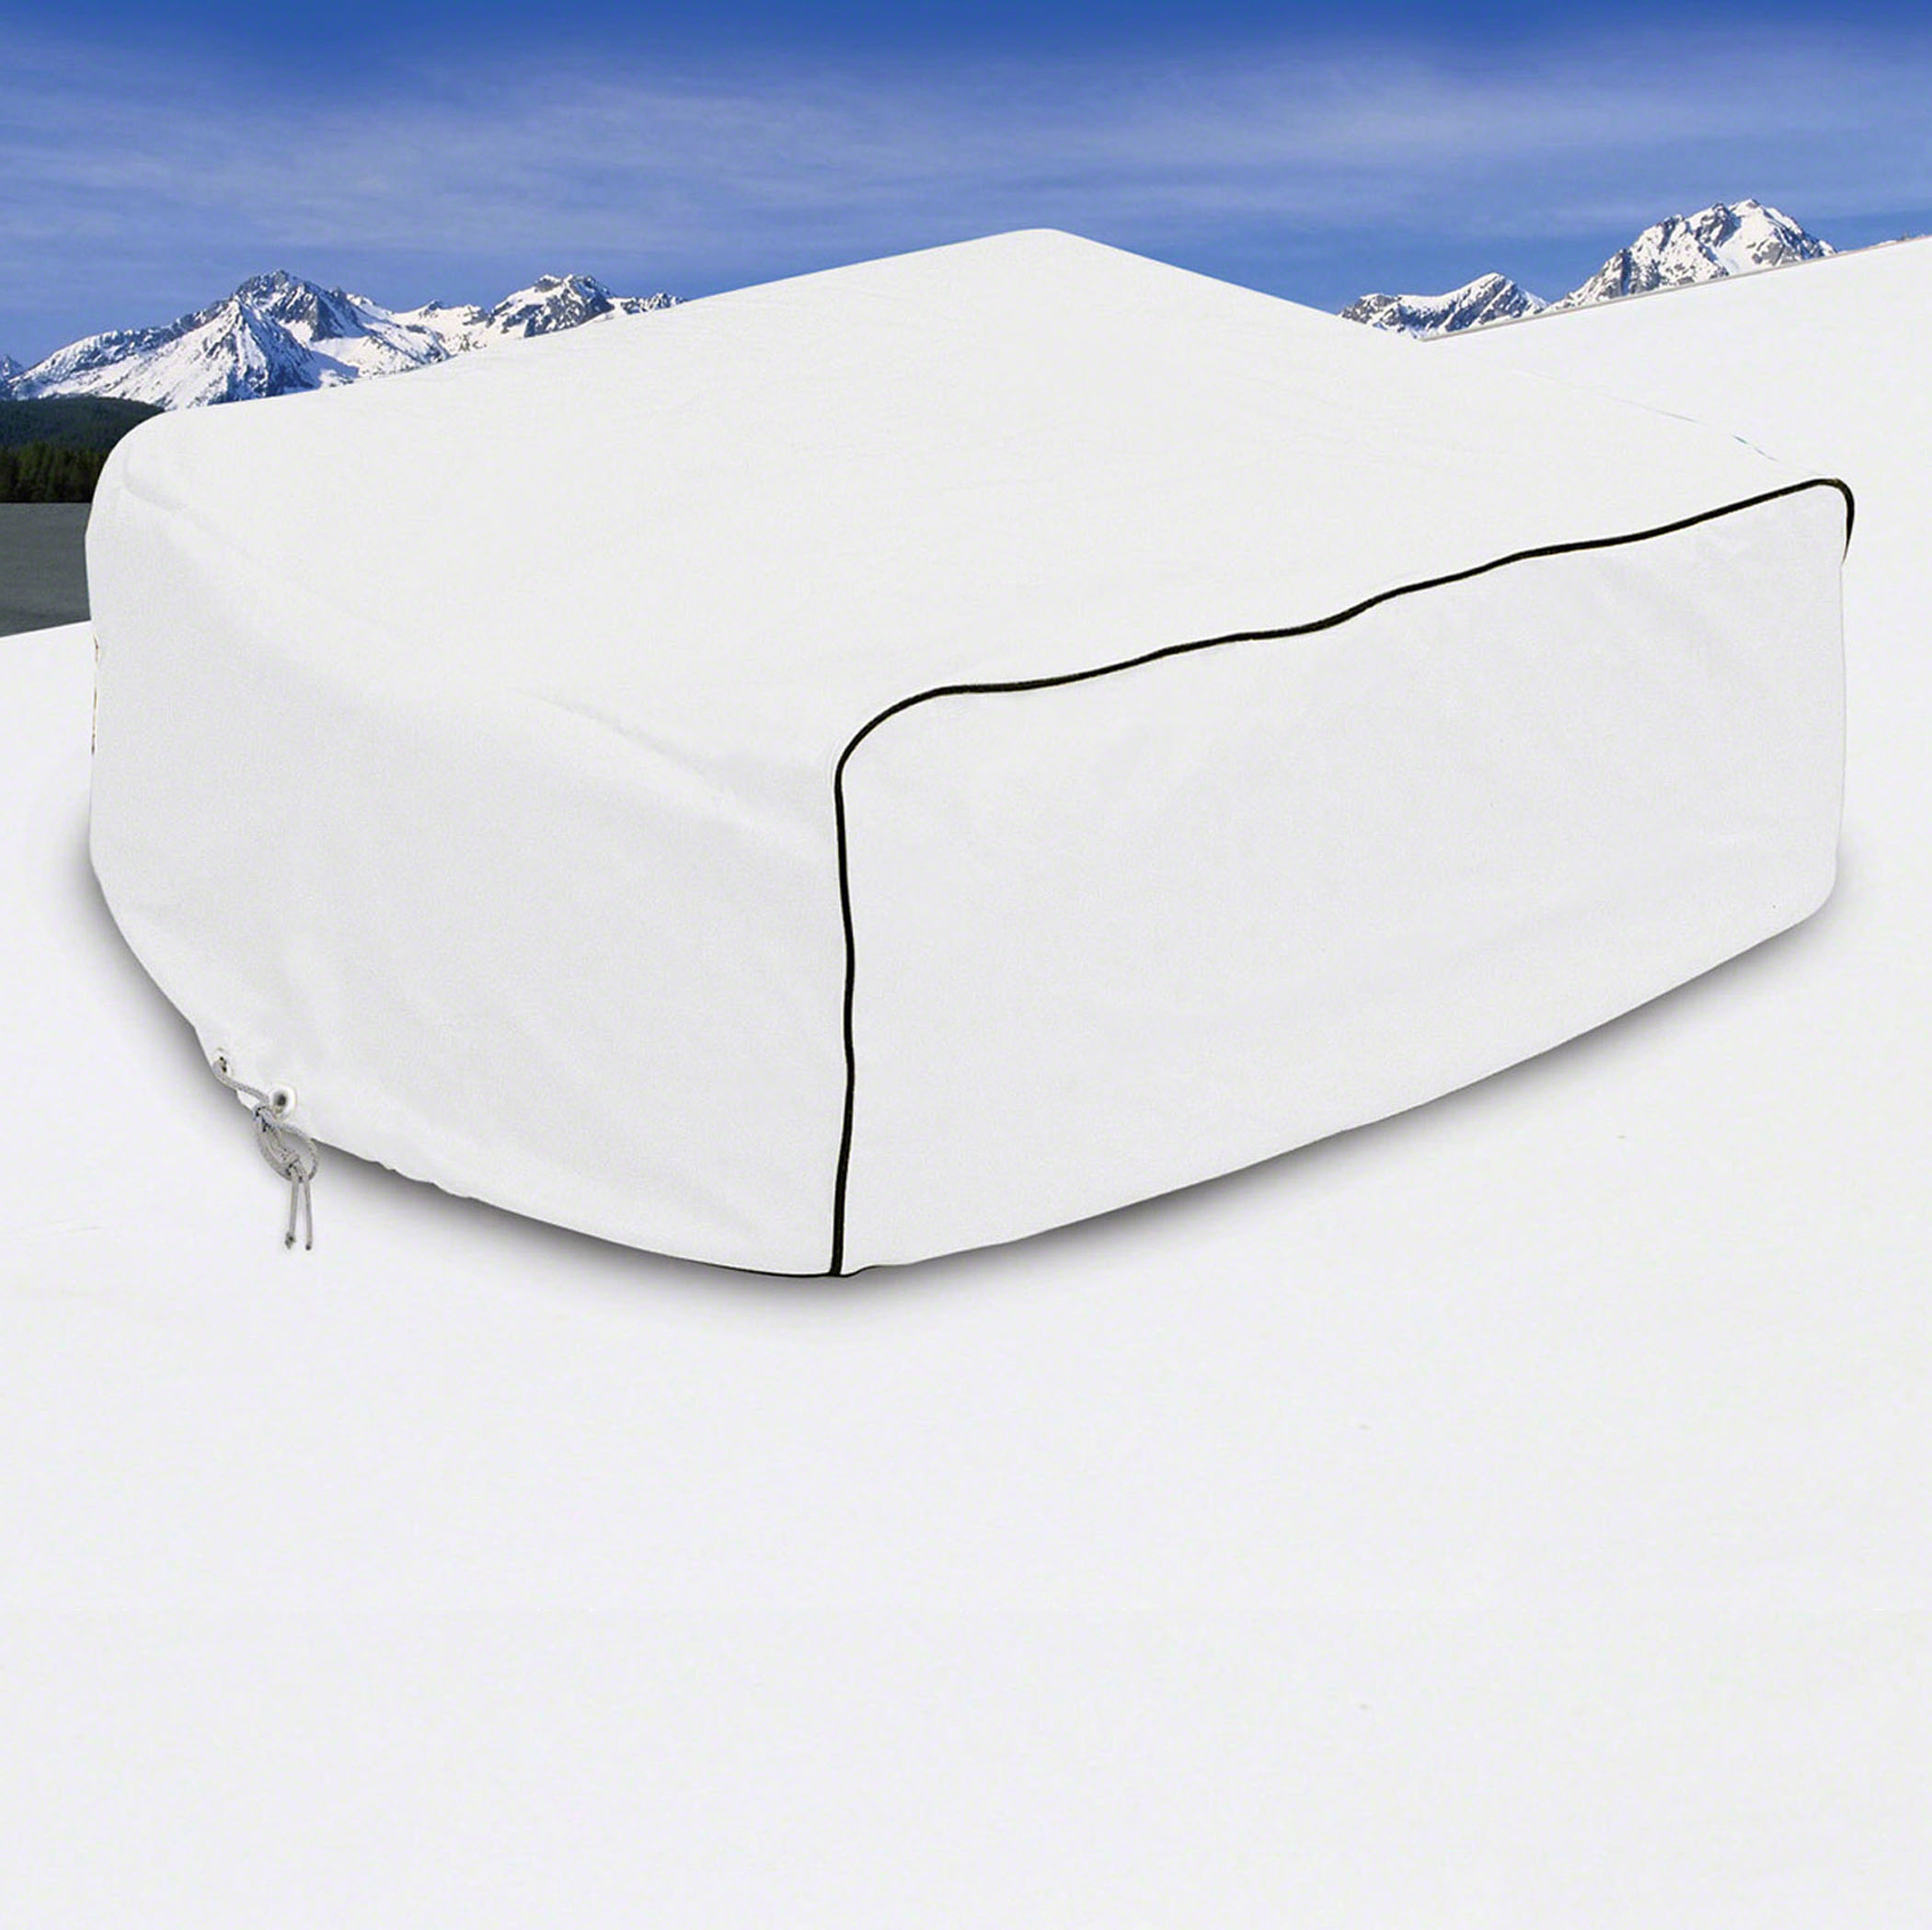 Classic Accessories OverDrive RV Air Conditioner Cover, Fits Carrier Air V, White